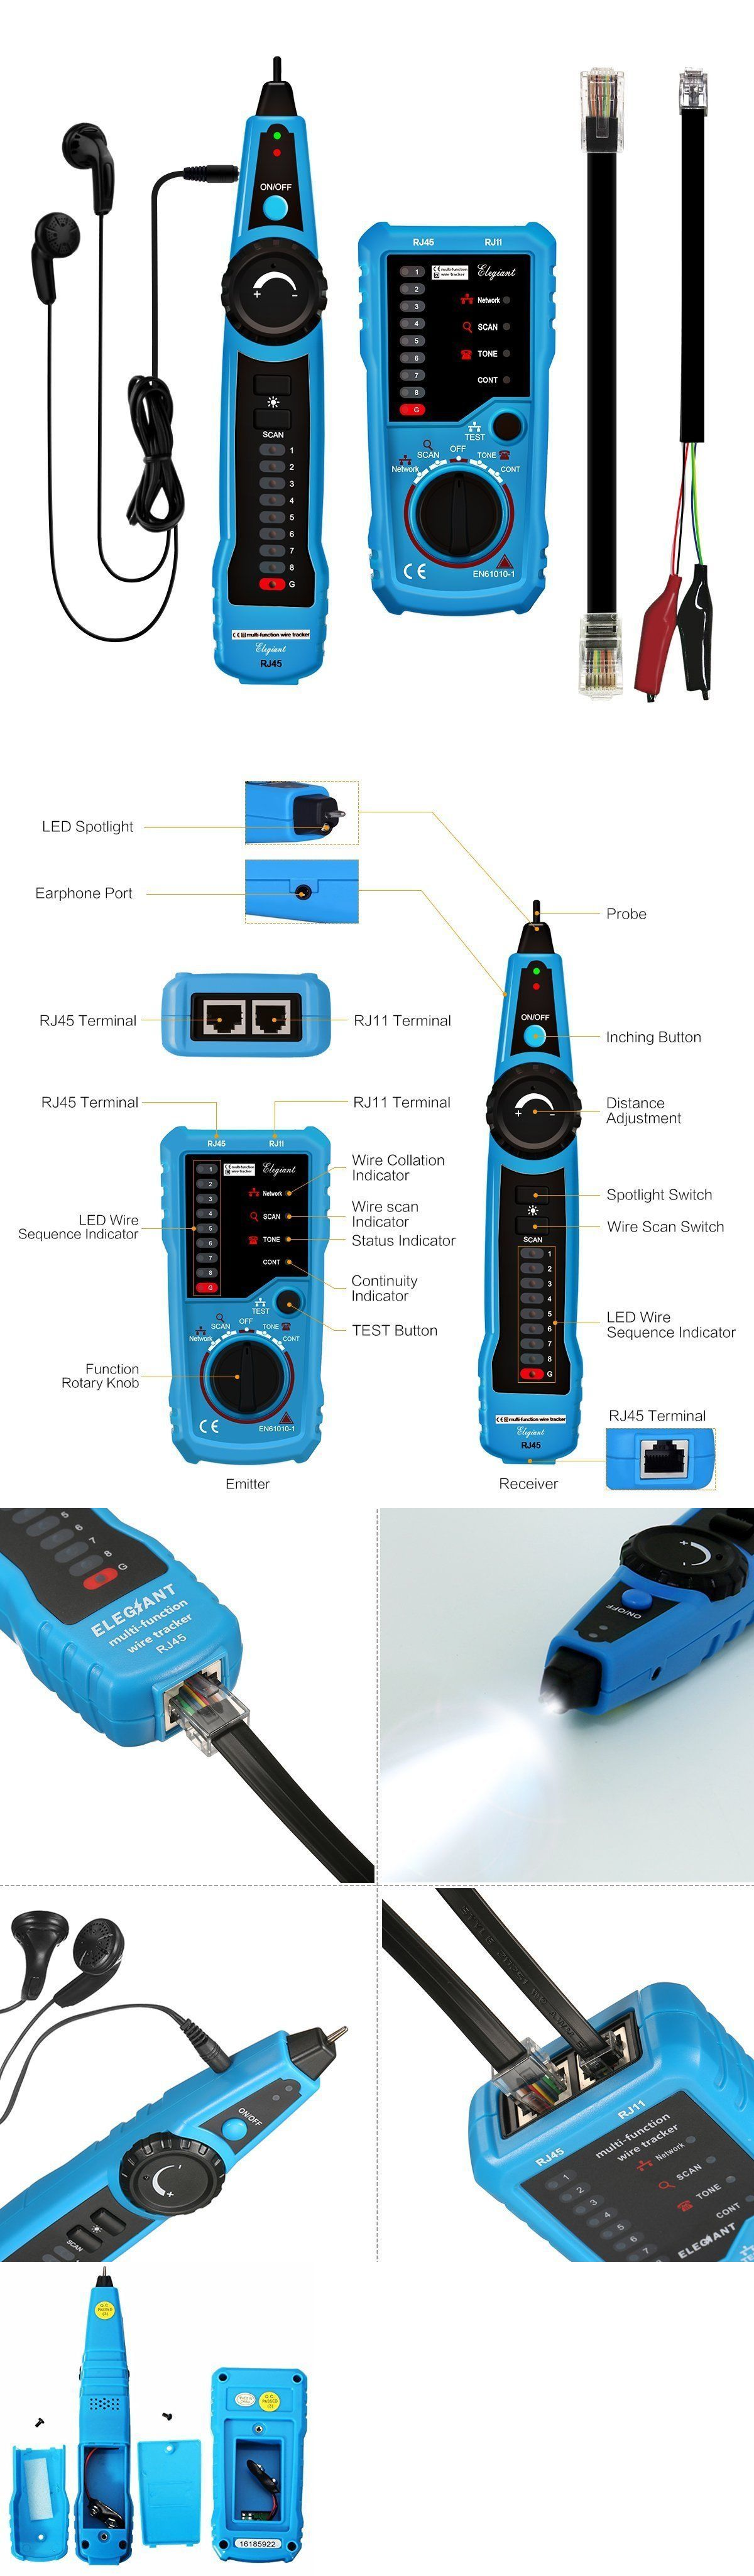 Computer Cable Testers 58300 Wire Tracker Cable Tester Line Finder Multifunction Toner Ethernet Lan Network Buy It Network Cable Cable Ebay